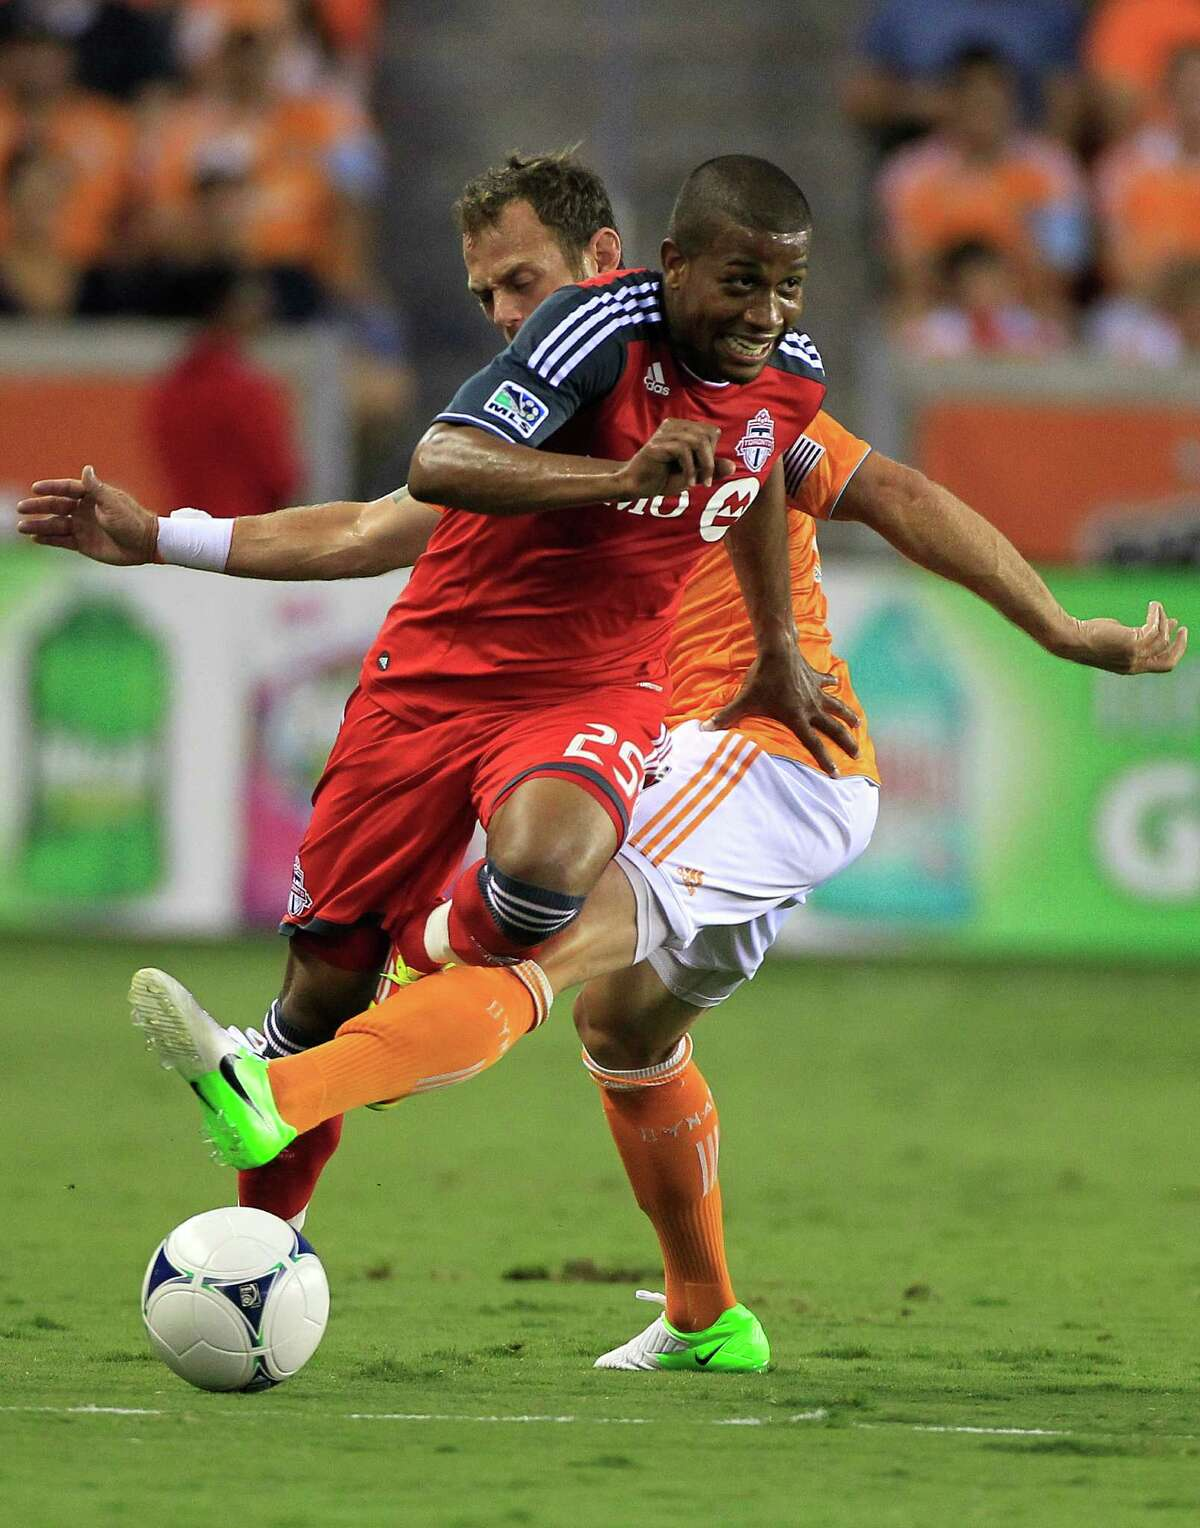 Toronto FC's Jeremy Hall, left, is tripped up by Houston Dynamo's Brad Davis, right, during the first half of a soccer game against the Houston Dynamo at BBVA Compass Stadium Wednesday, June 20, 2012, in Houston.